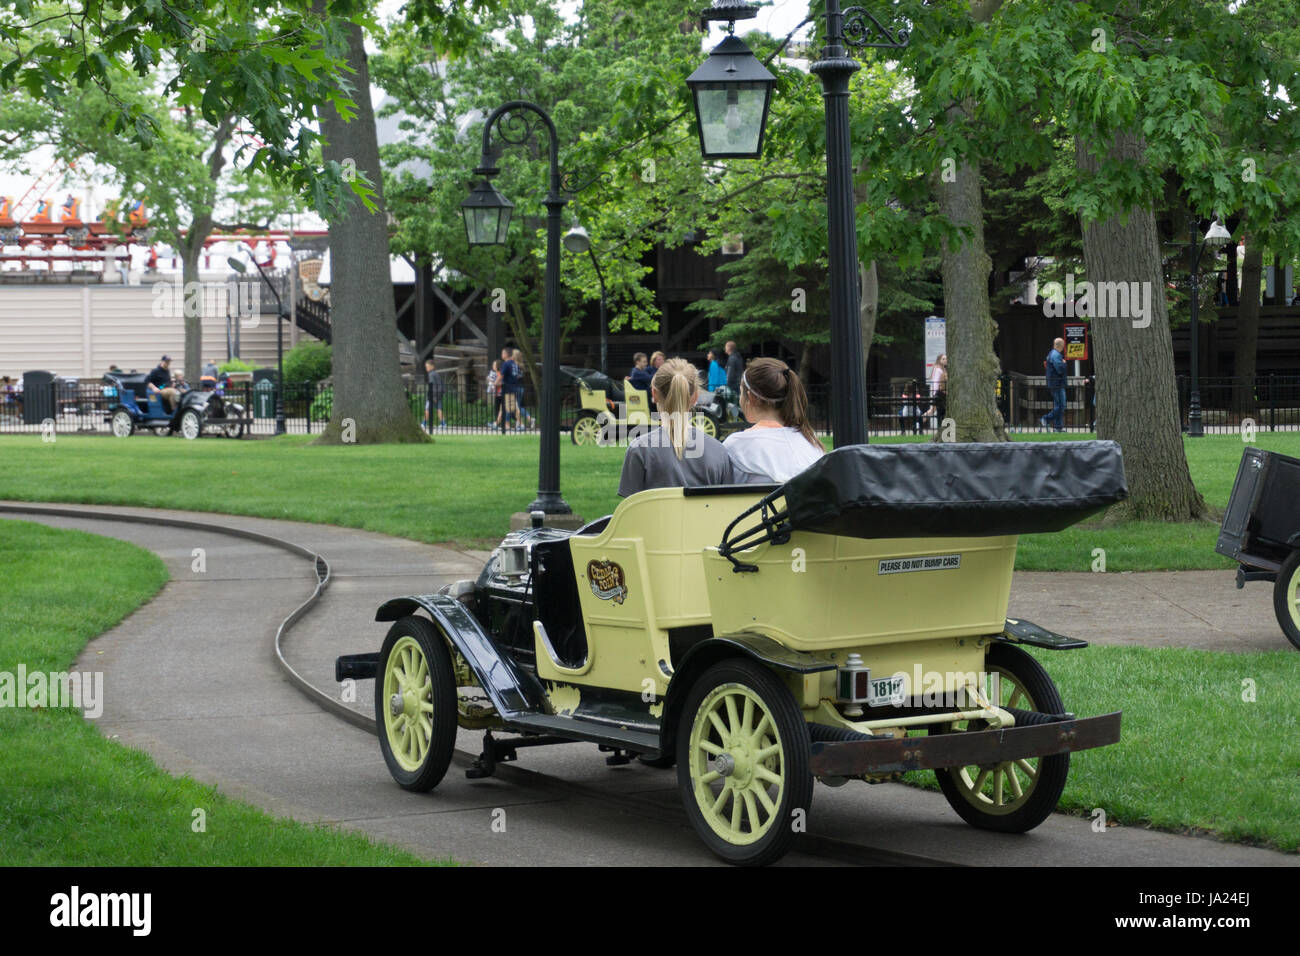 Old Time Car Ride Stock Photo: 143876954 - Alamy